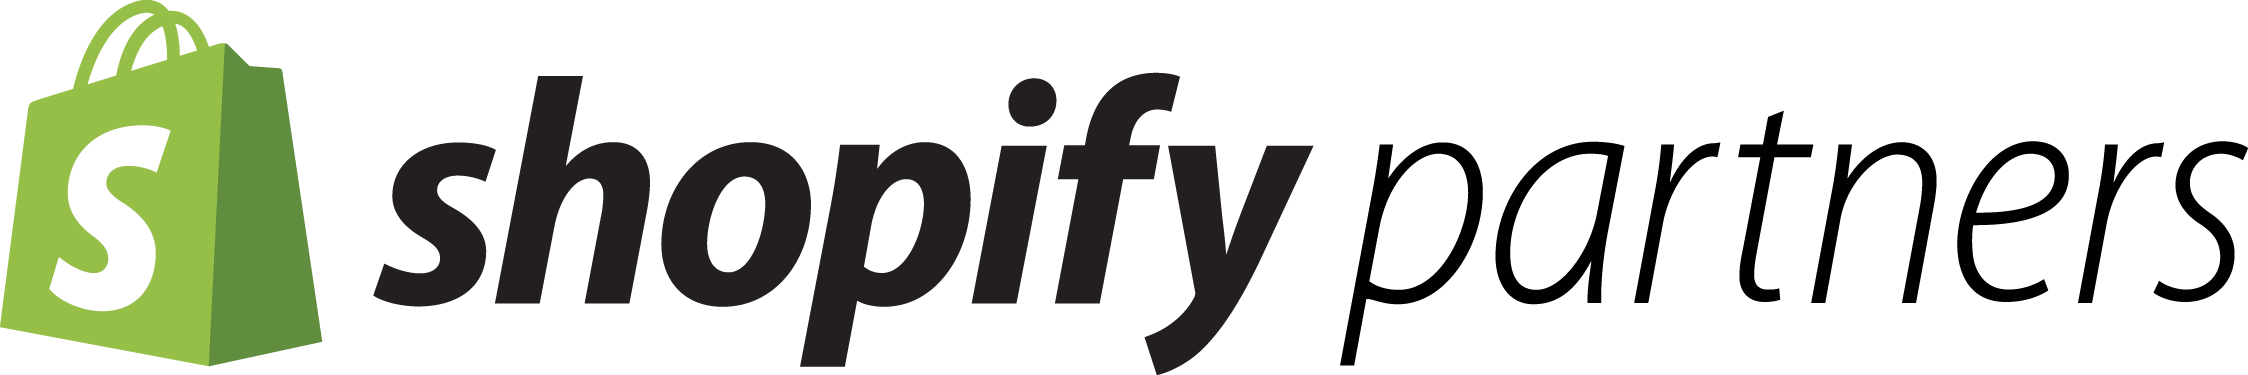 Shopify partners digismoothie cz